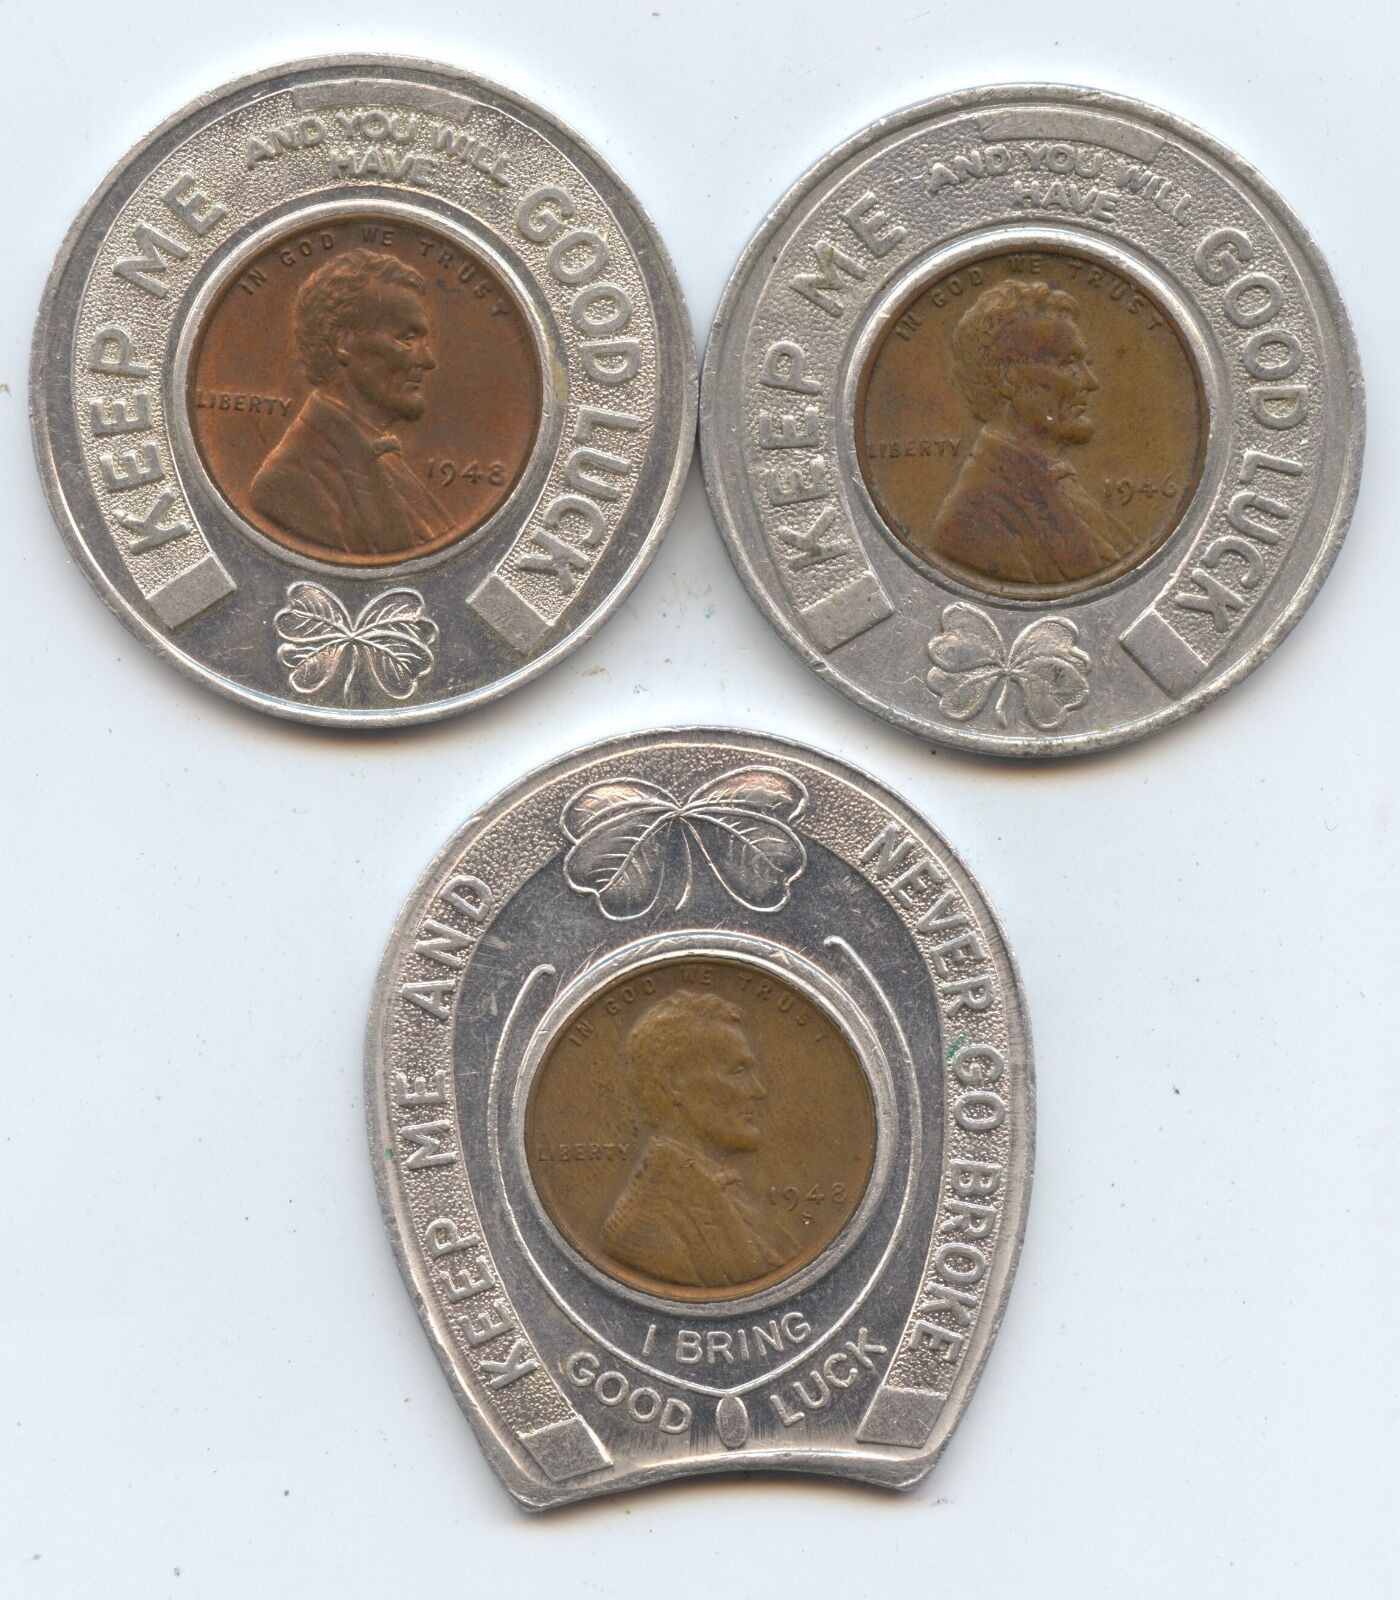 Three Diff. Good Luck Tokens (#7600) Encased Cents 1946 Flowers from Andersons